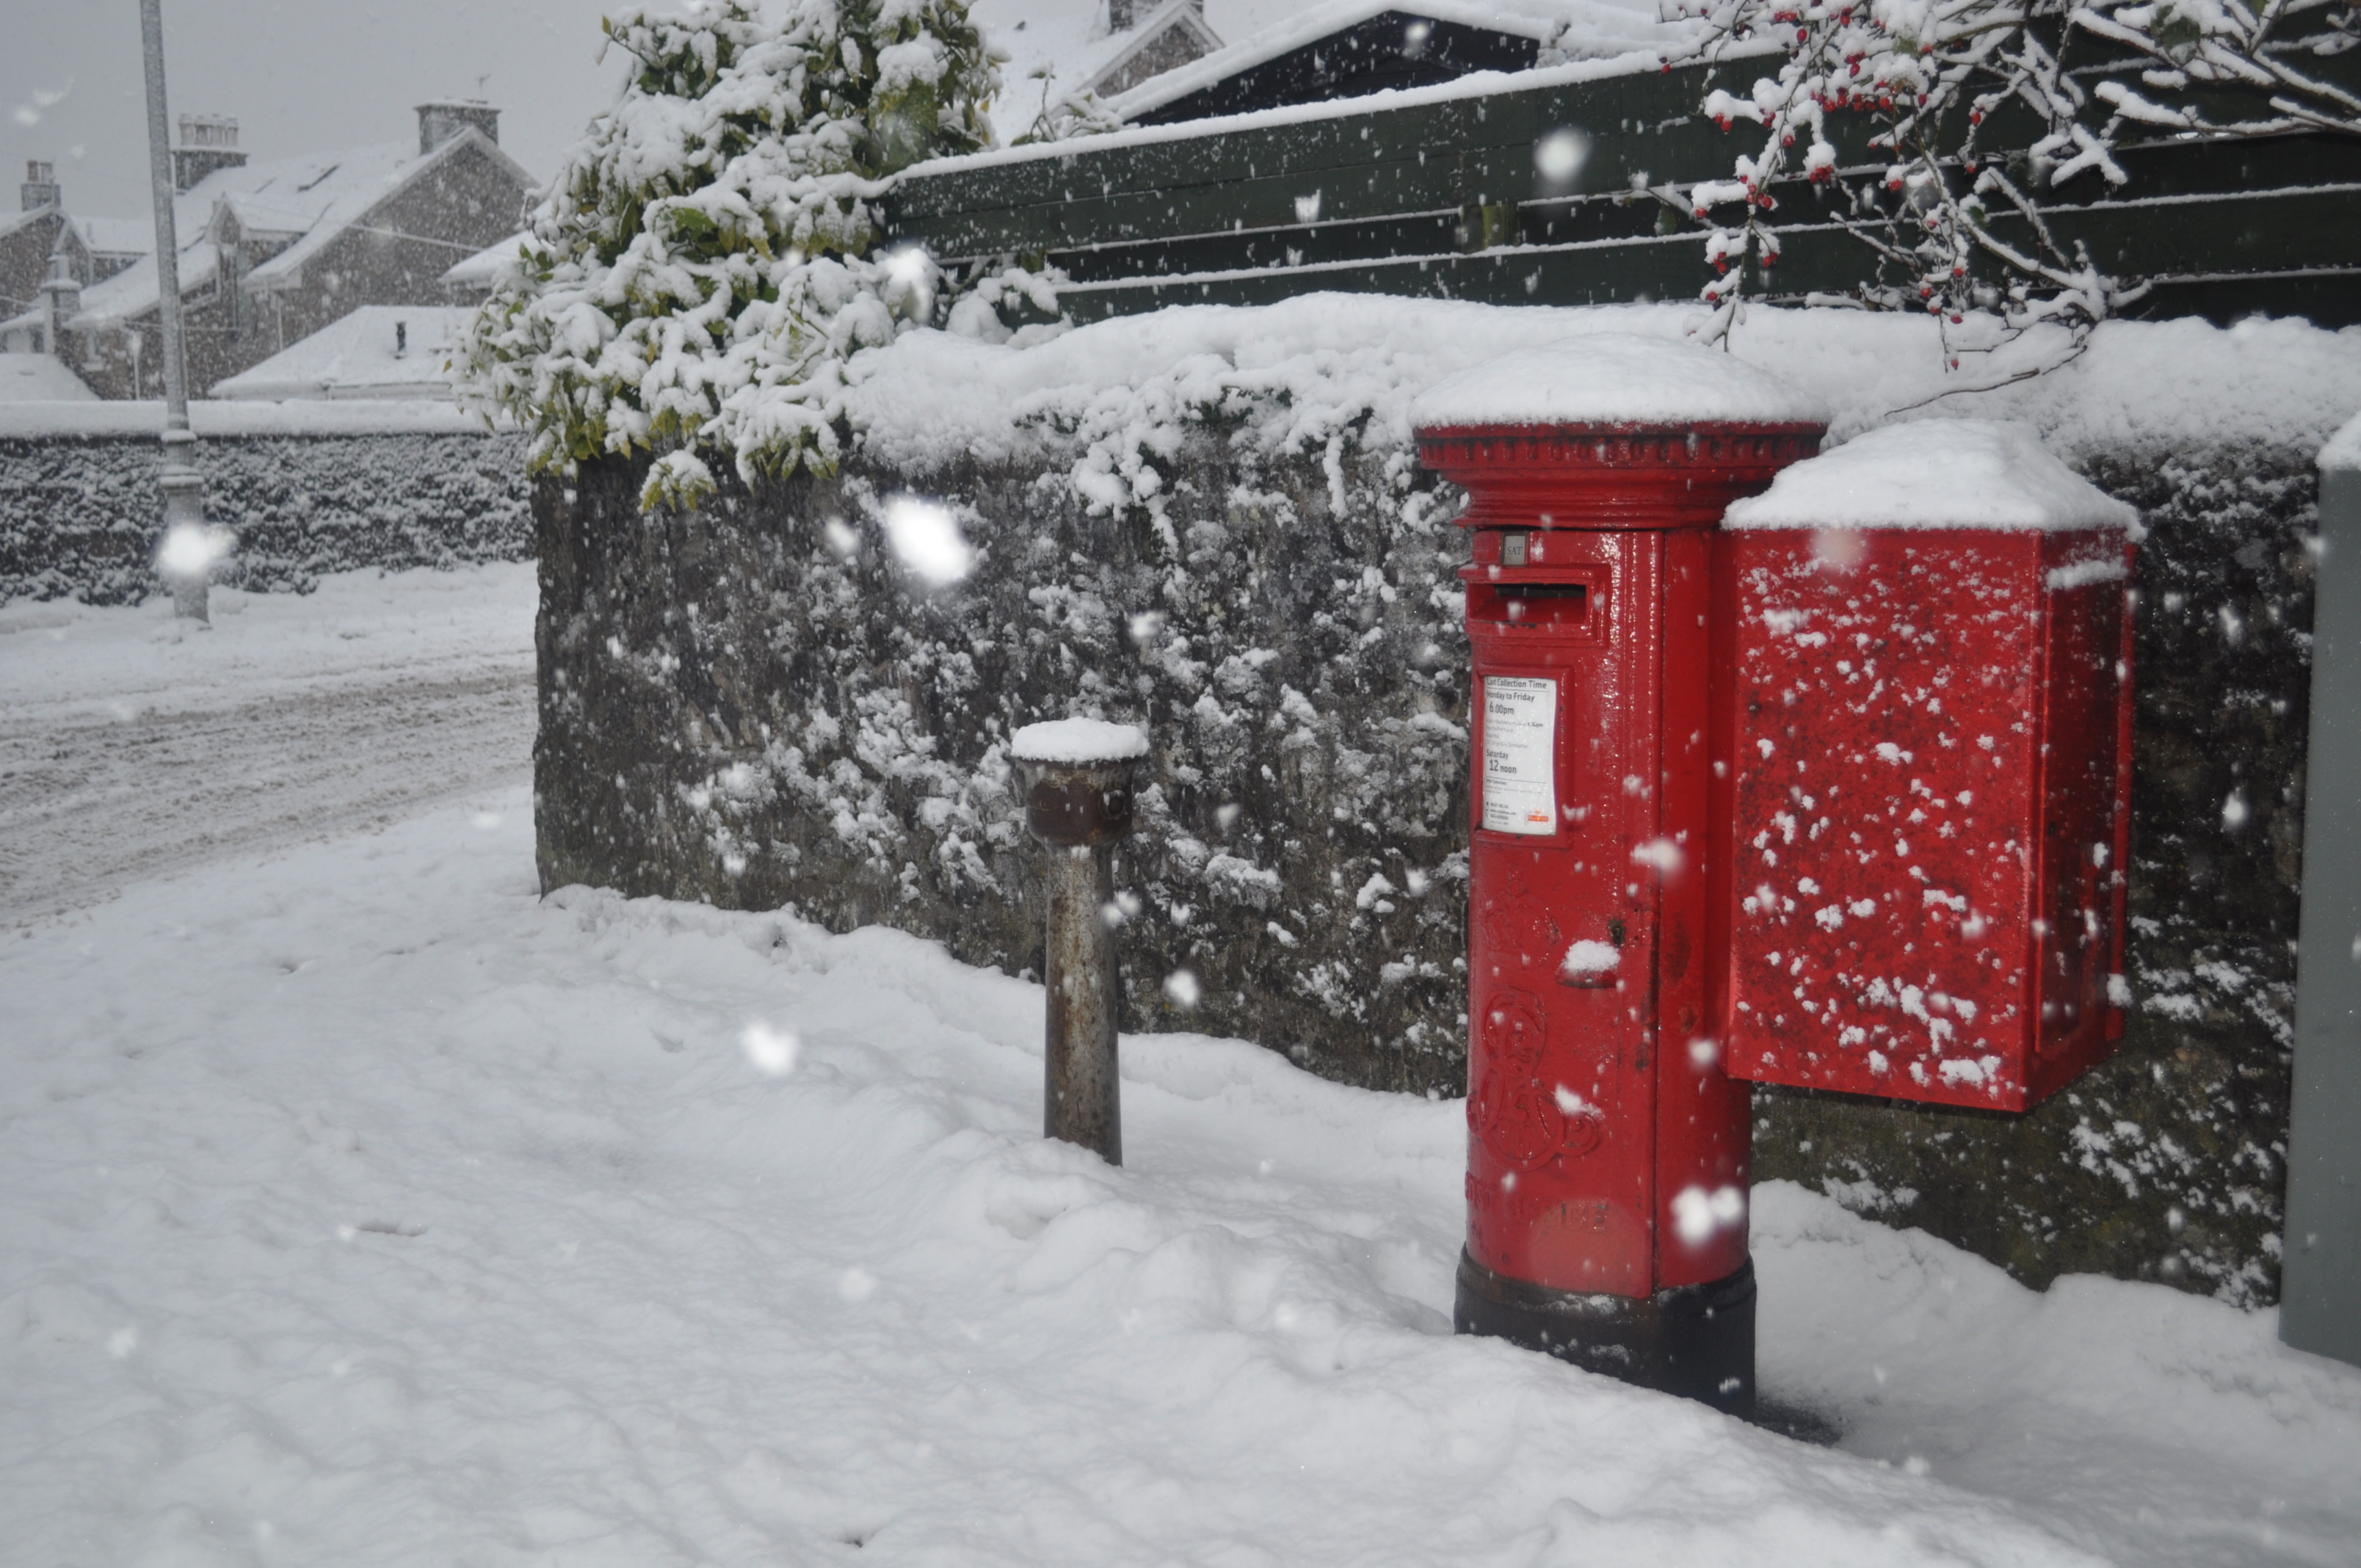 SAVE THE SIX DAY POSTAL SERVICE, SAYS MSP BAILLIE